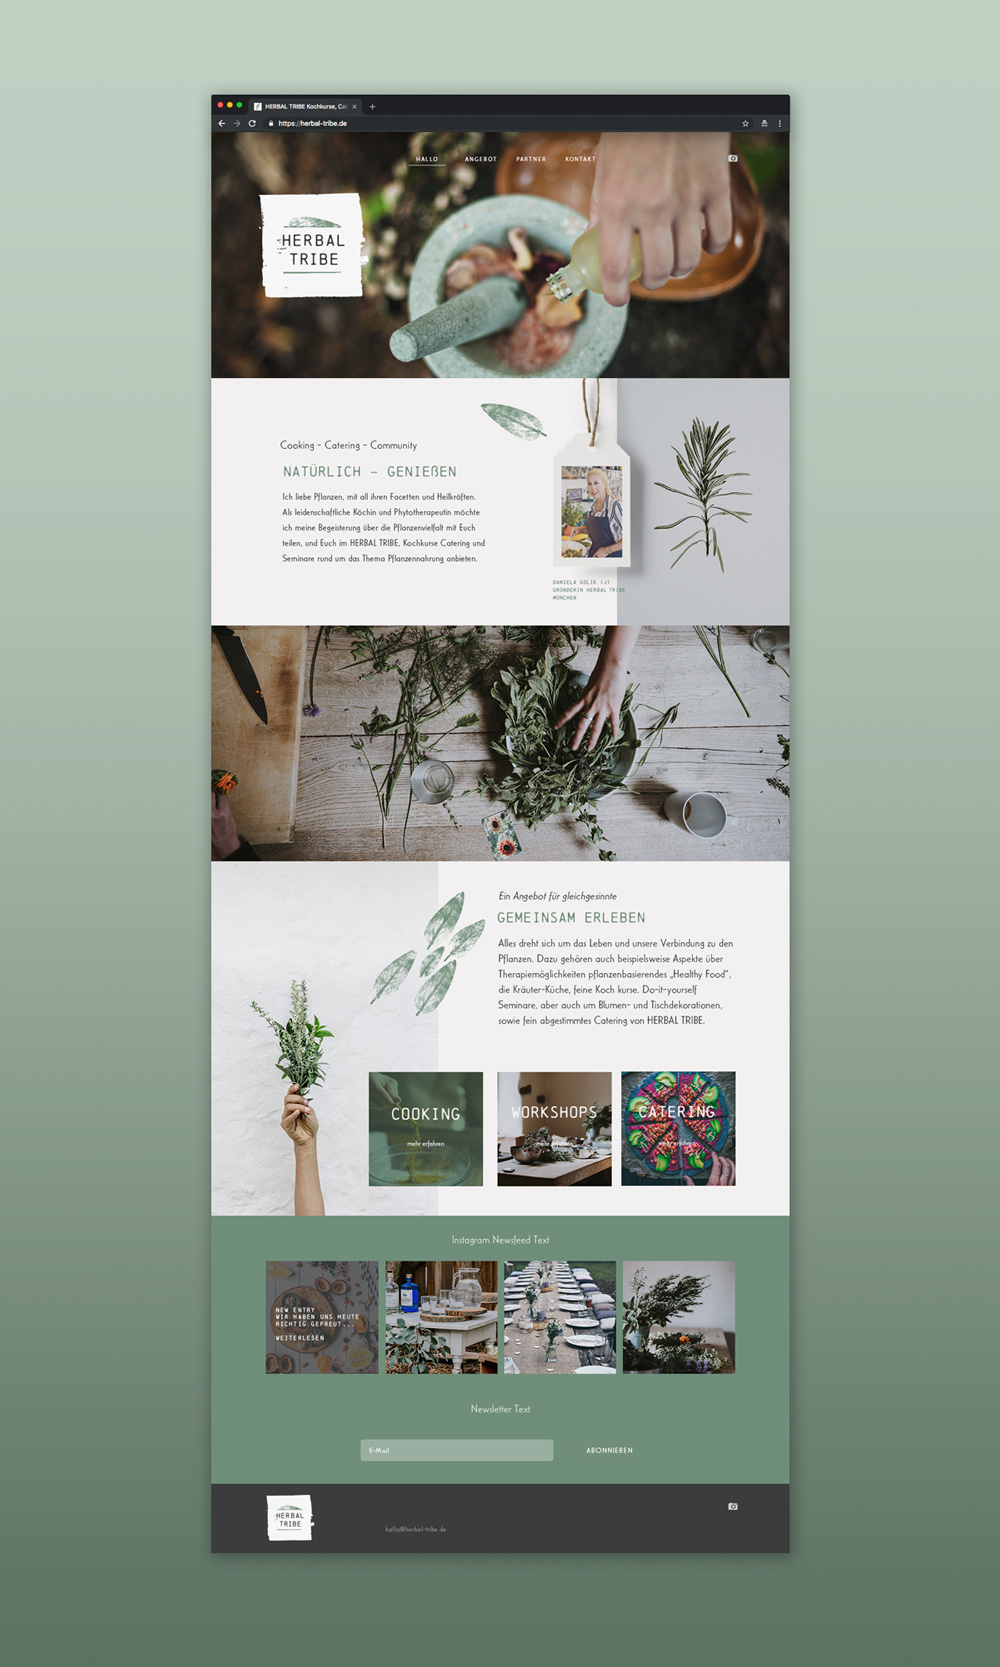 Michael-seidl-webdesign-herbal-tribe.jpg